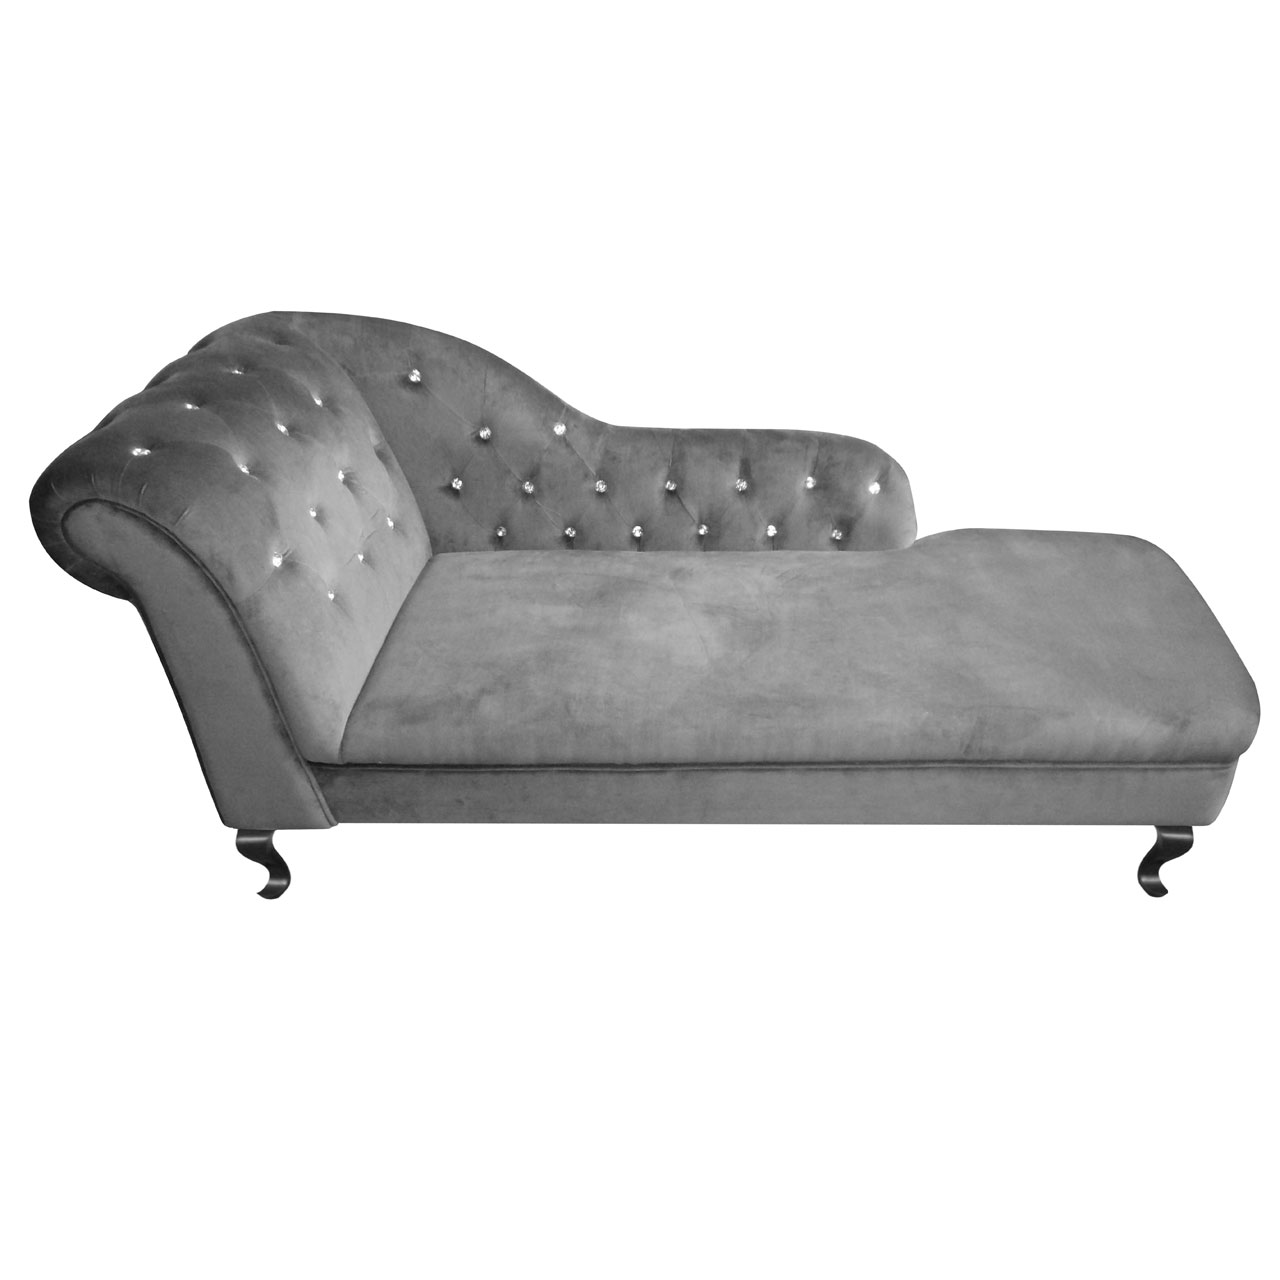 Chesterfield chaise lounge charcoal grey velvet diamante - Chaise longue chesterfield ...